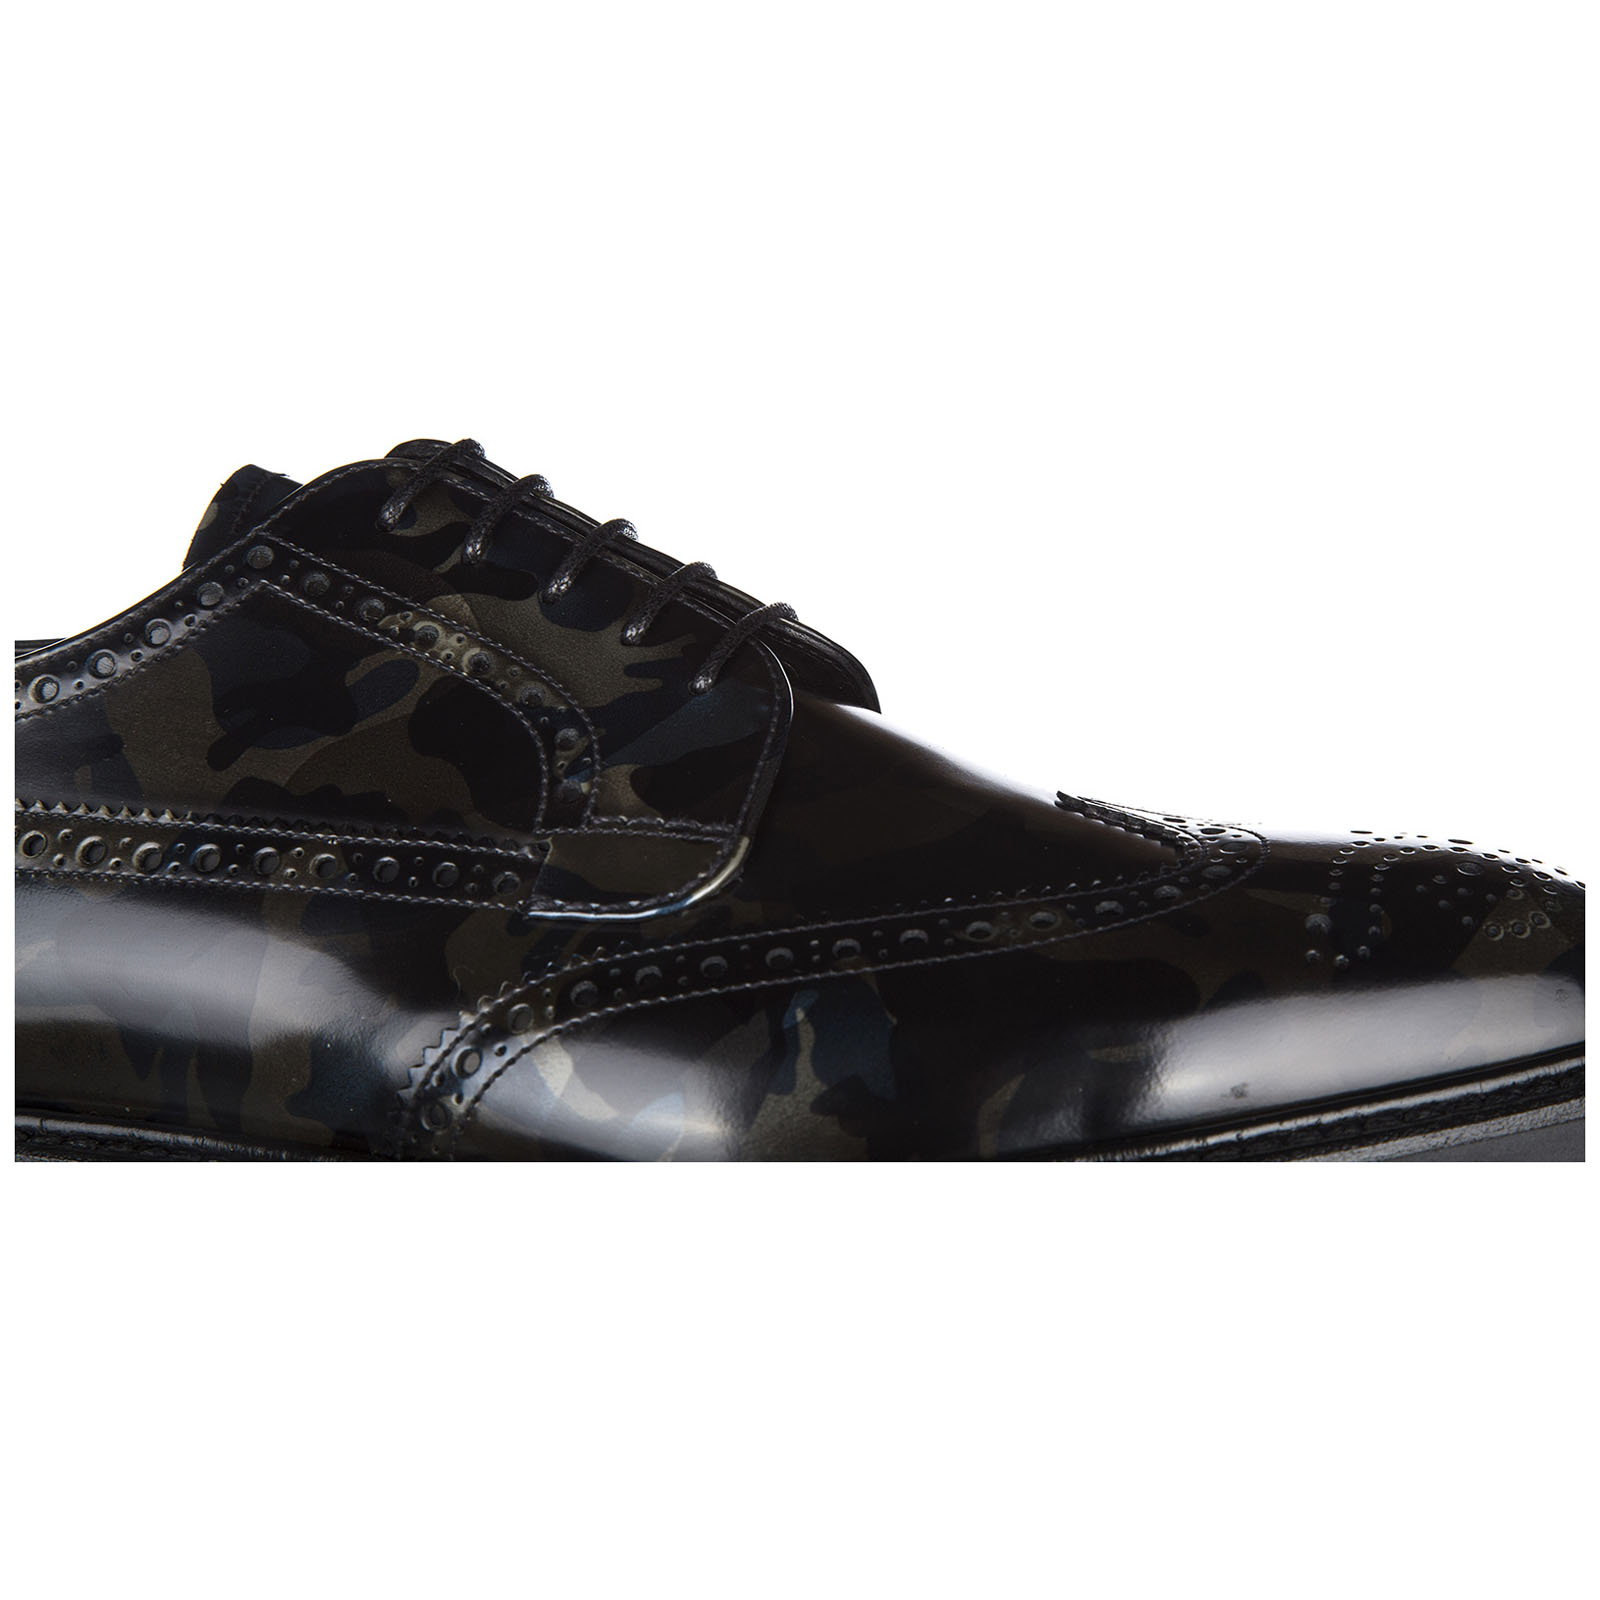 Men's classic leather lace up laced formal shoes spazzolato camouflage derby